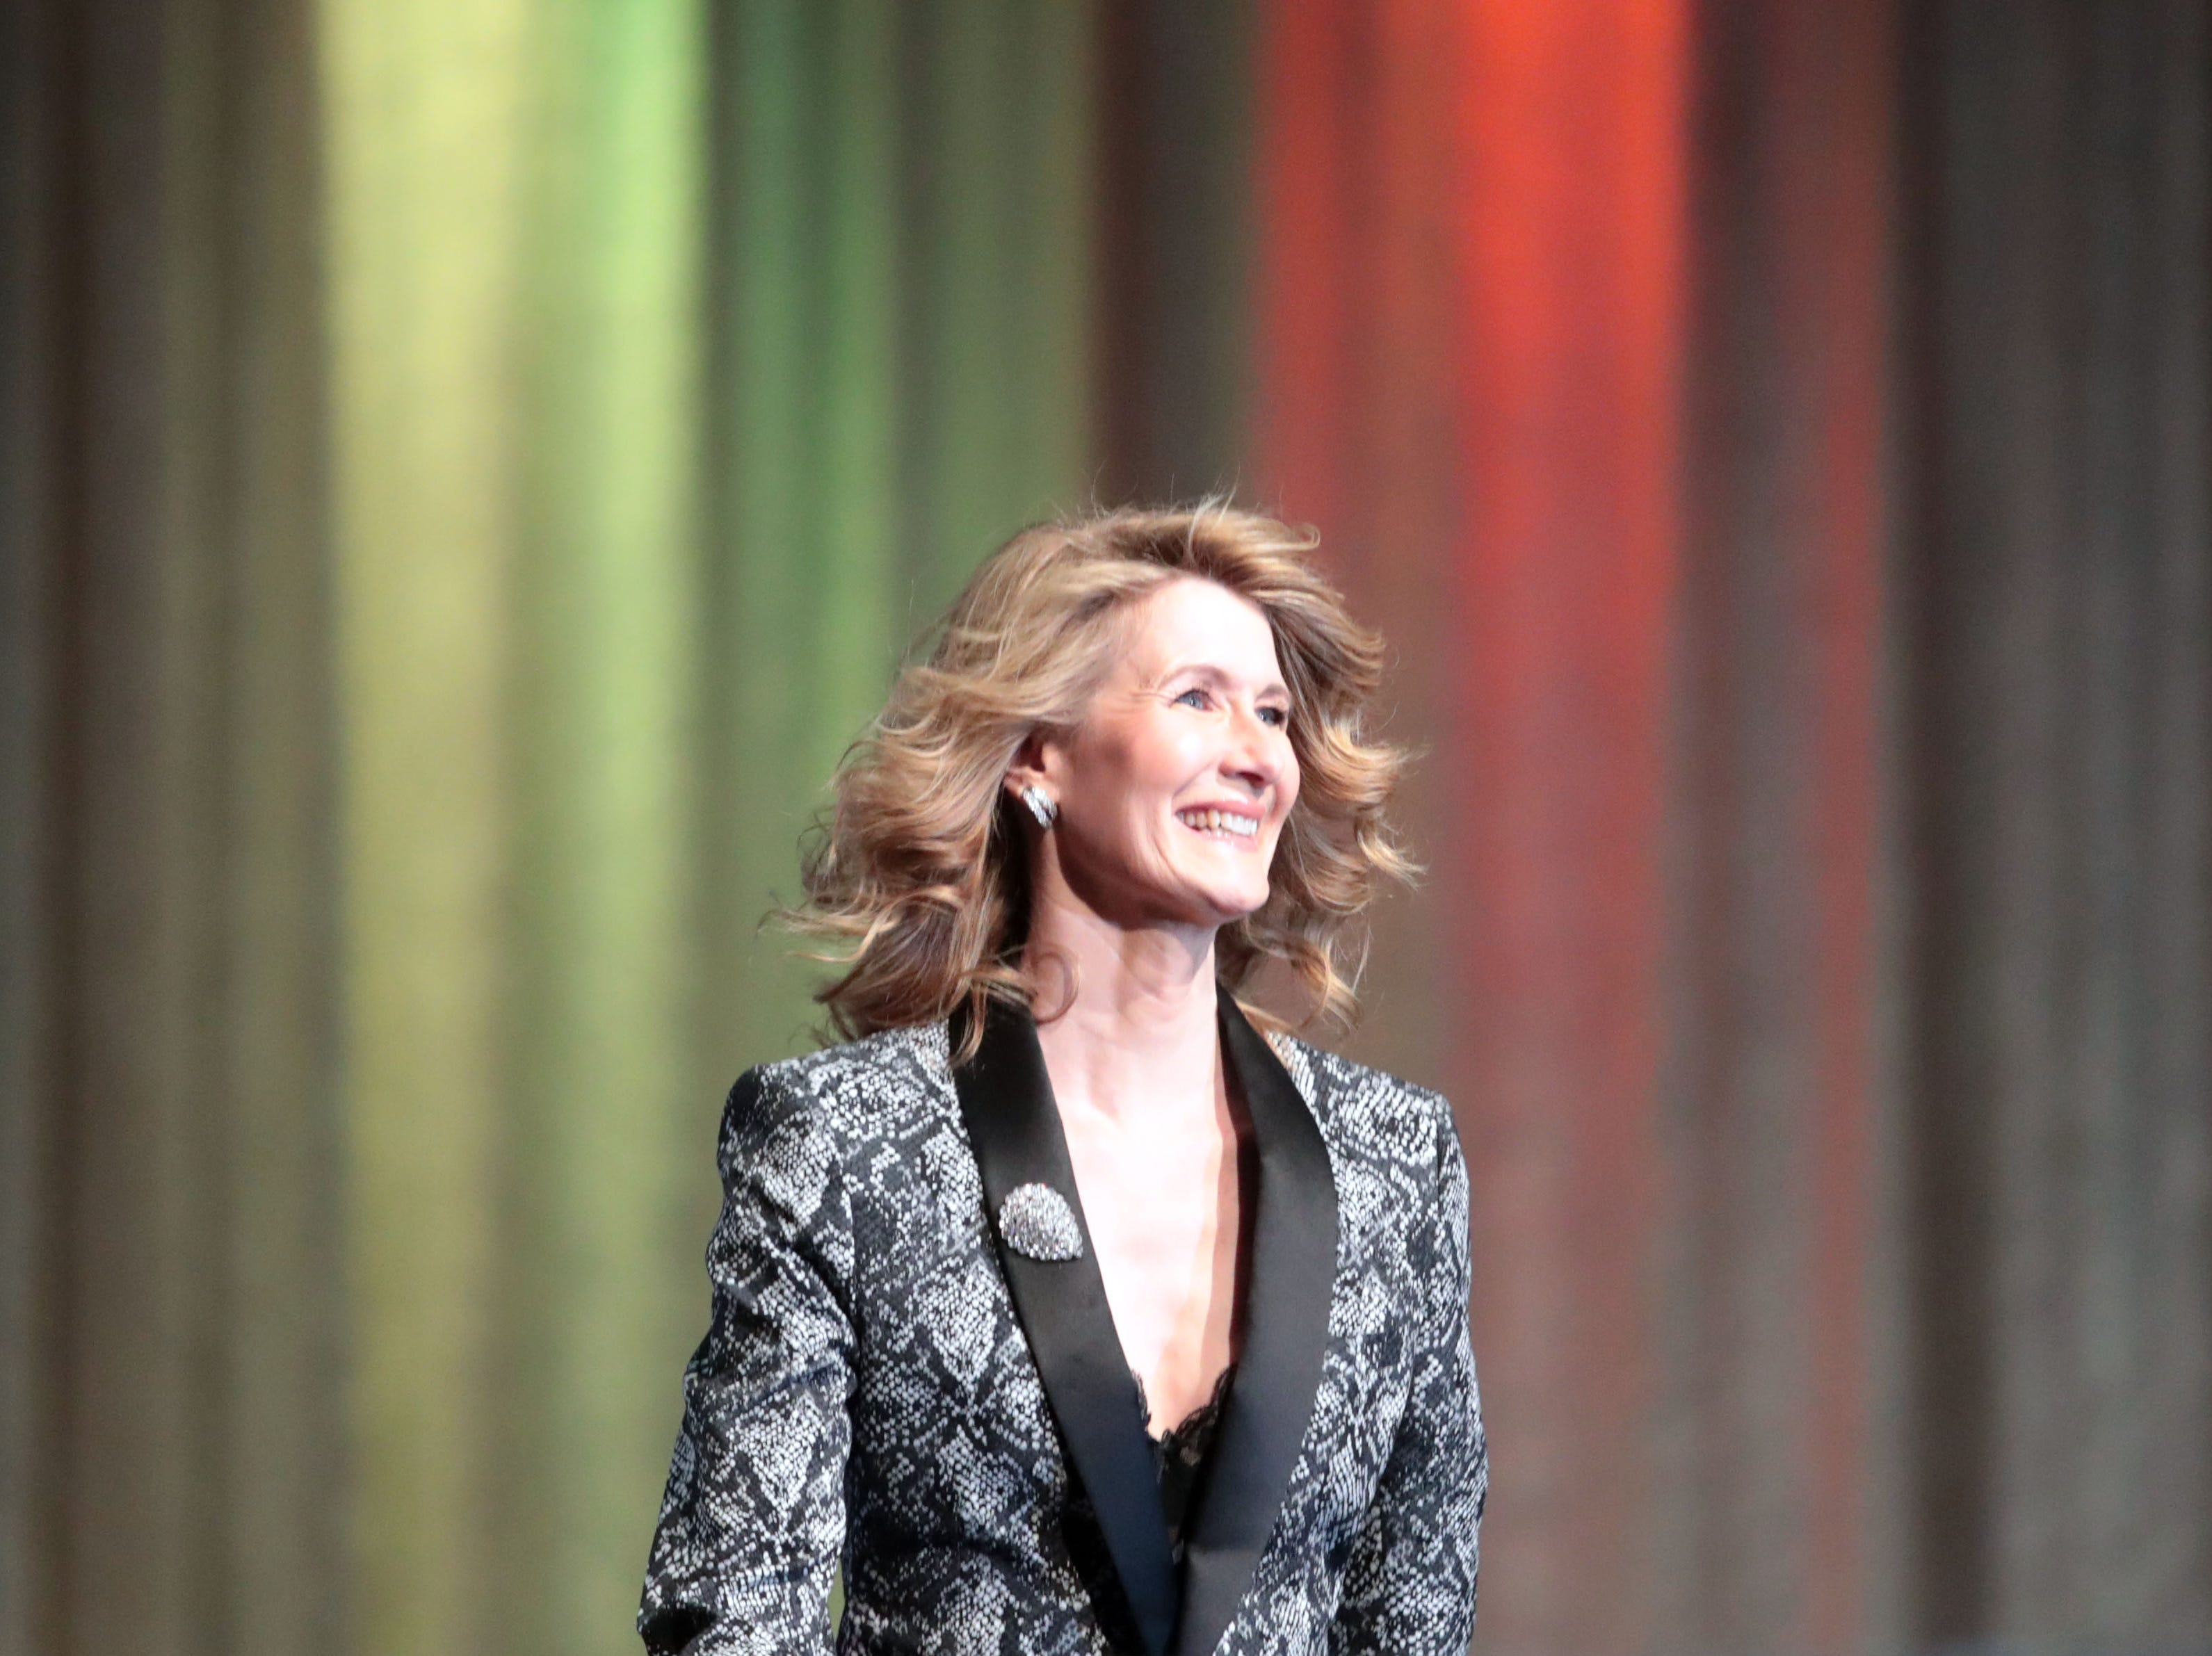 Laura Dern on stage to present the Breakthrough Performance Award Thursday, January 3, 2018 at the Palm Springs International Film Festival Gala in Palm Springs.